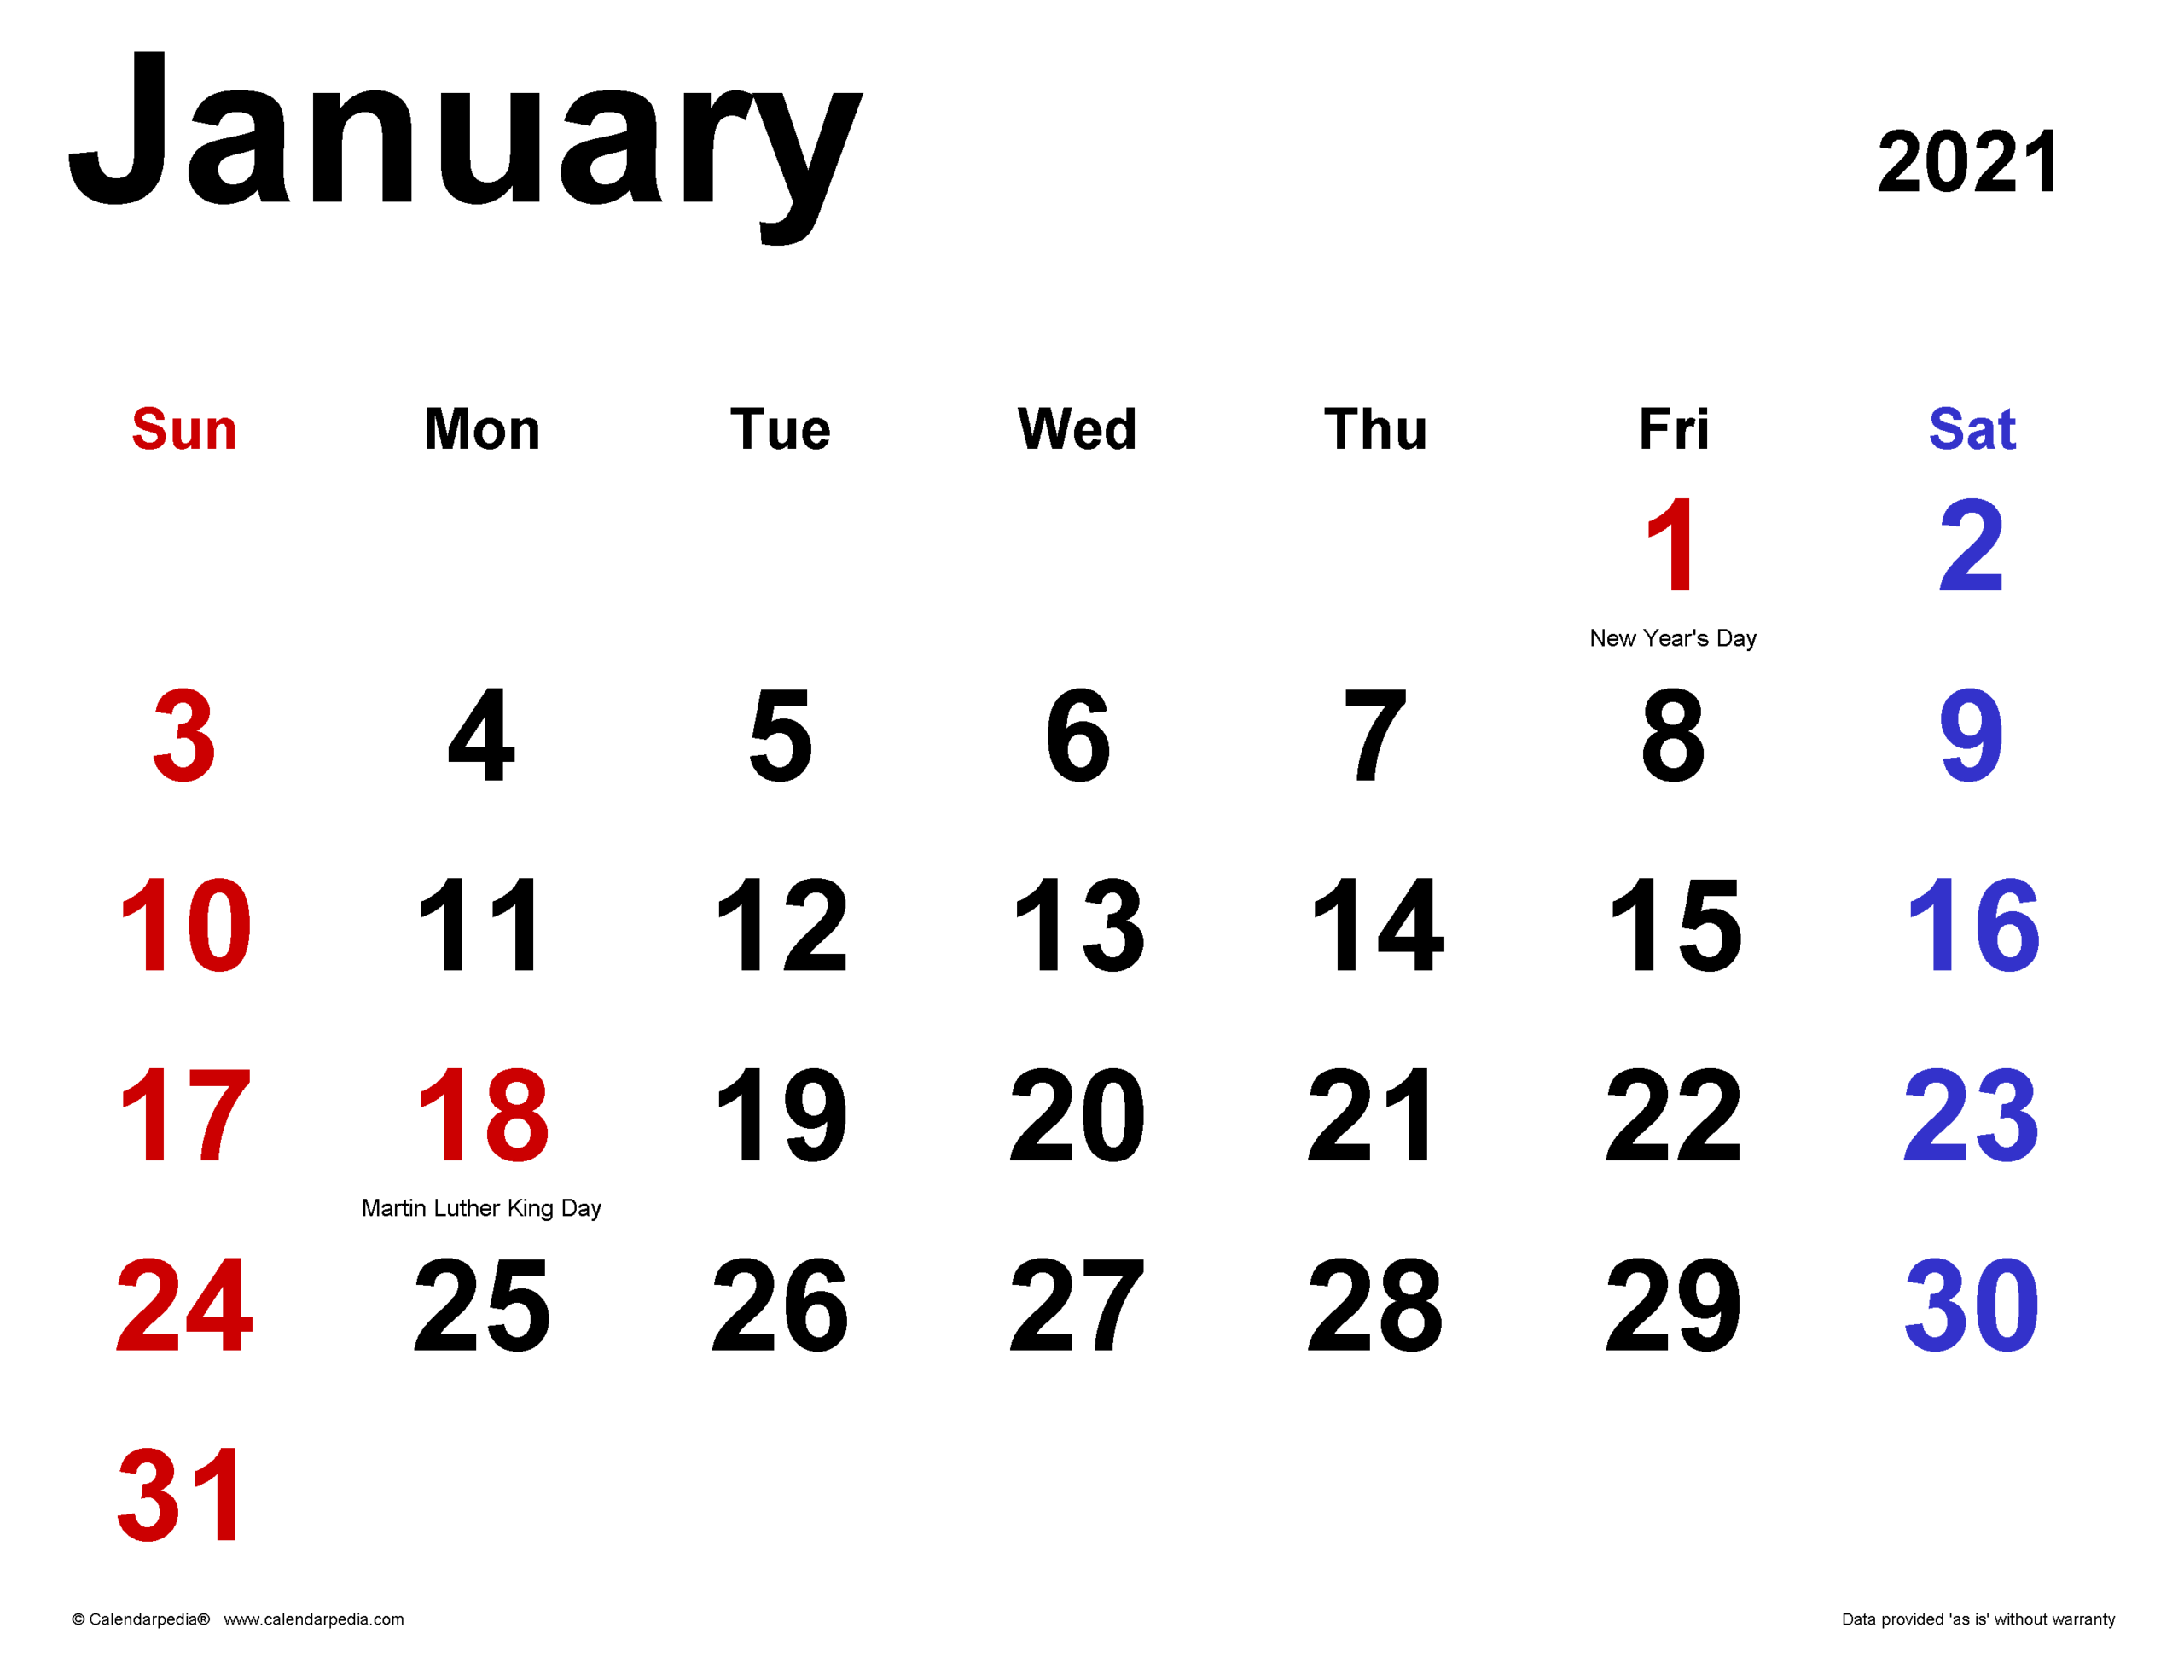 January 2021 Calendar | Templates For Word, Excel And Pdf in Shift Schedule Jan 2021